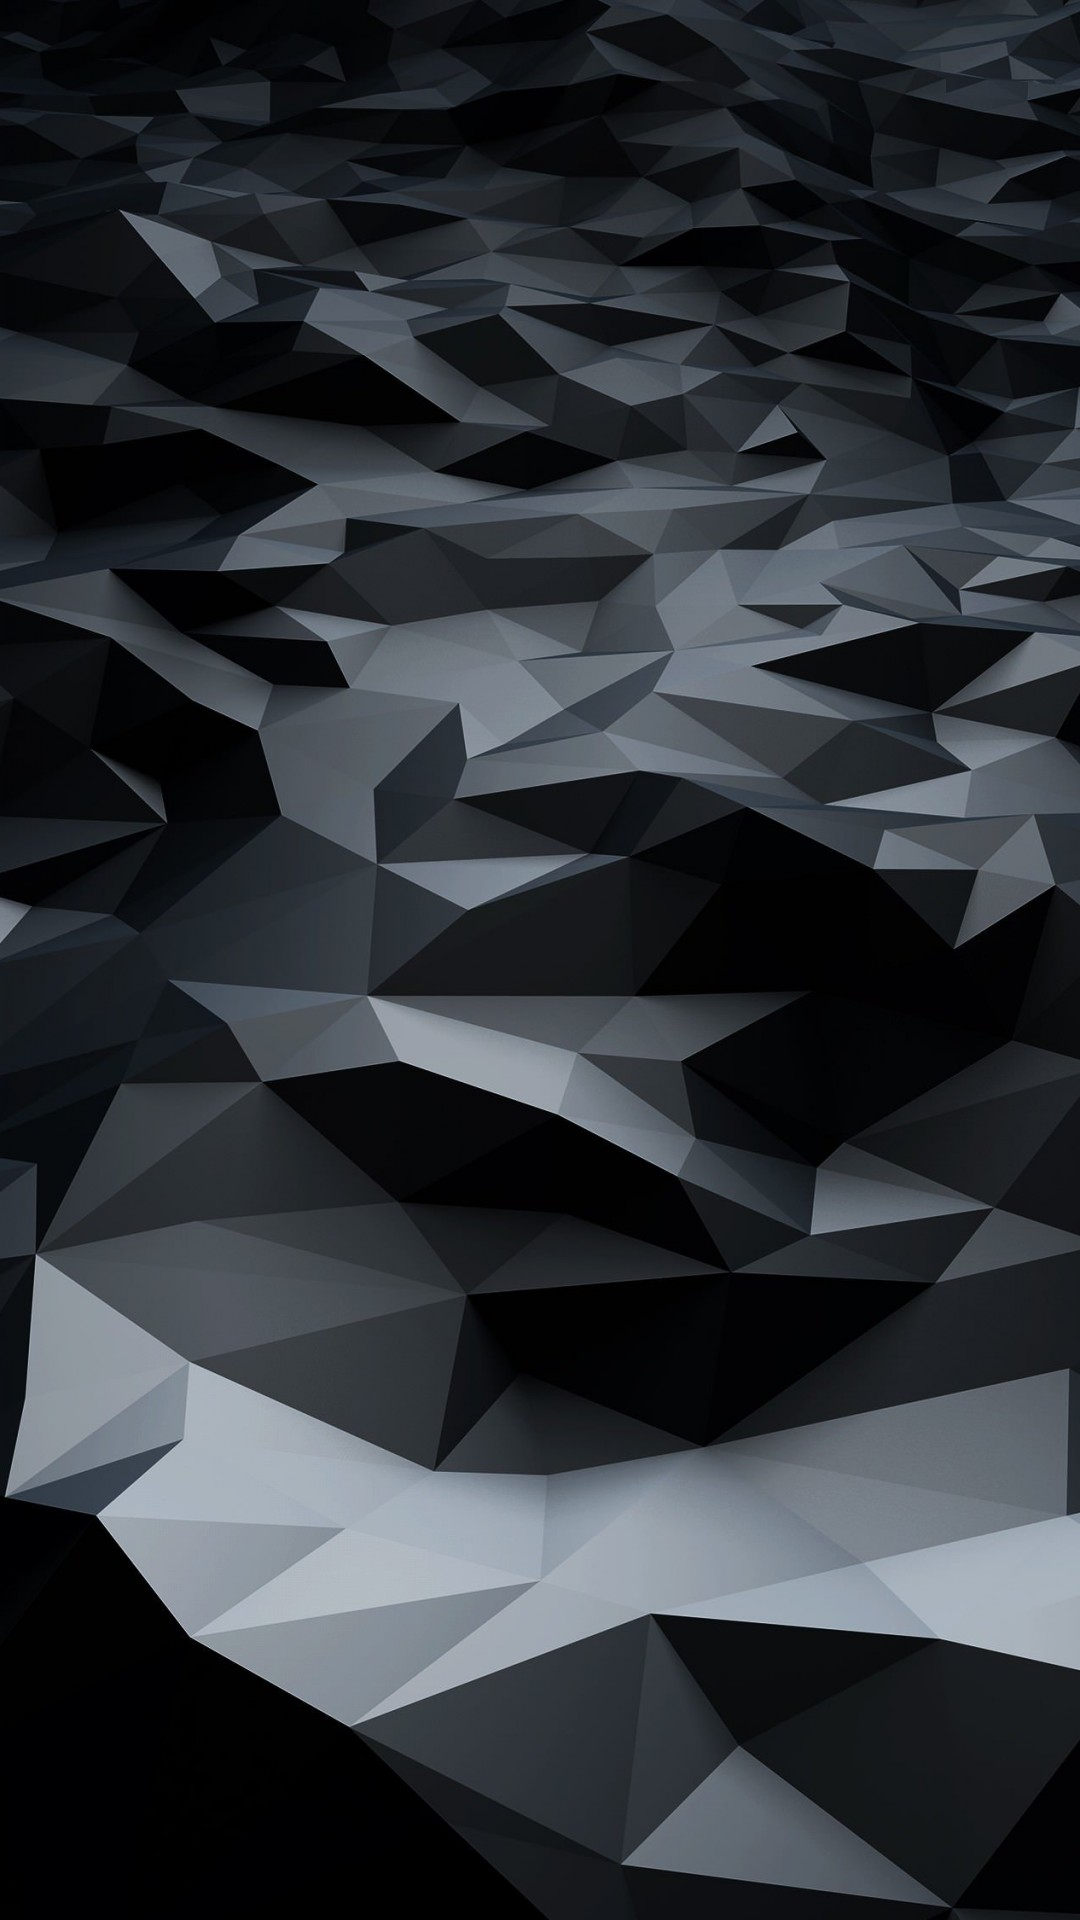 Abstract Black Low Poly Wallpaper for HTC One